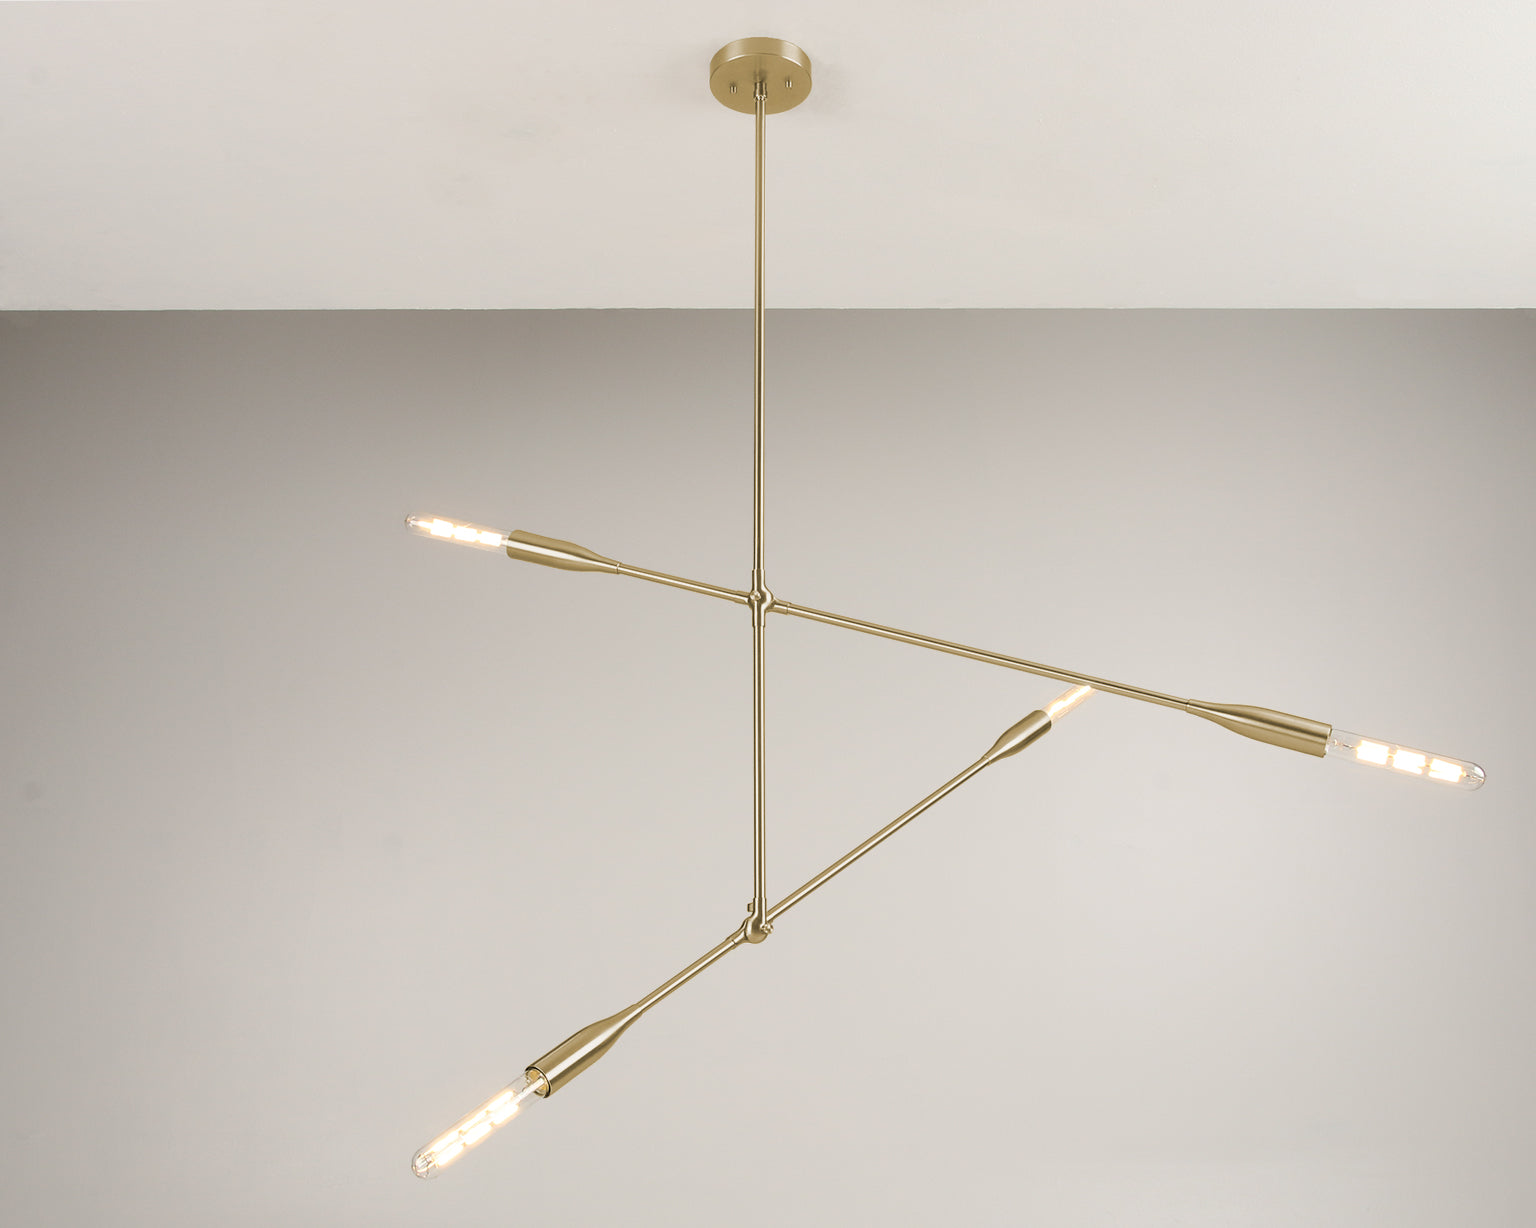 Sorenthia 2-Arm modern light fixture in Brushed Brass by Studio DUNN